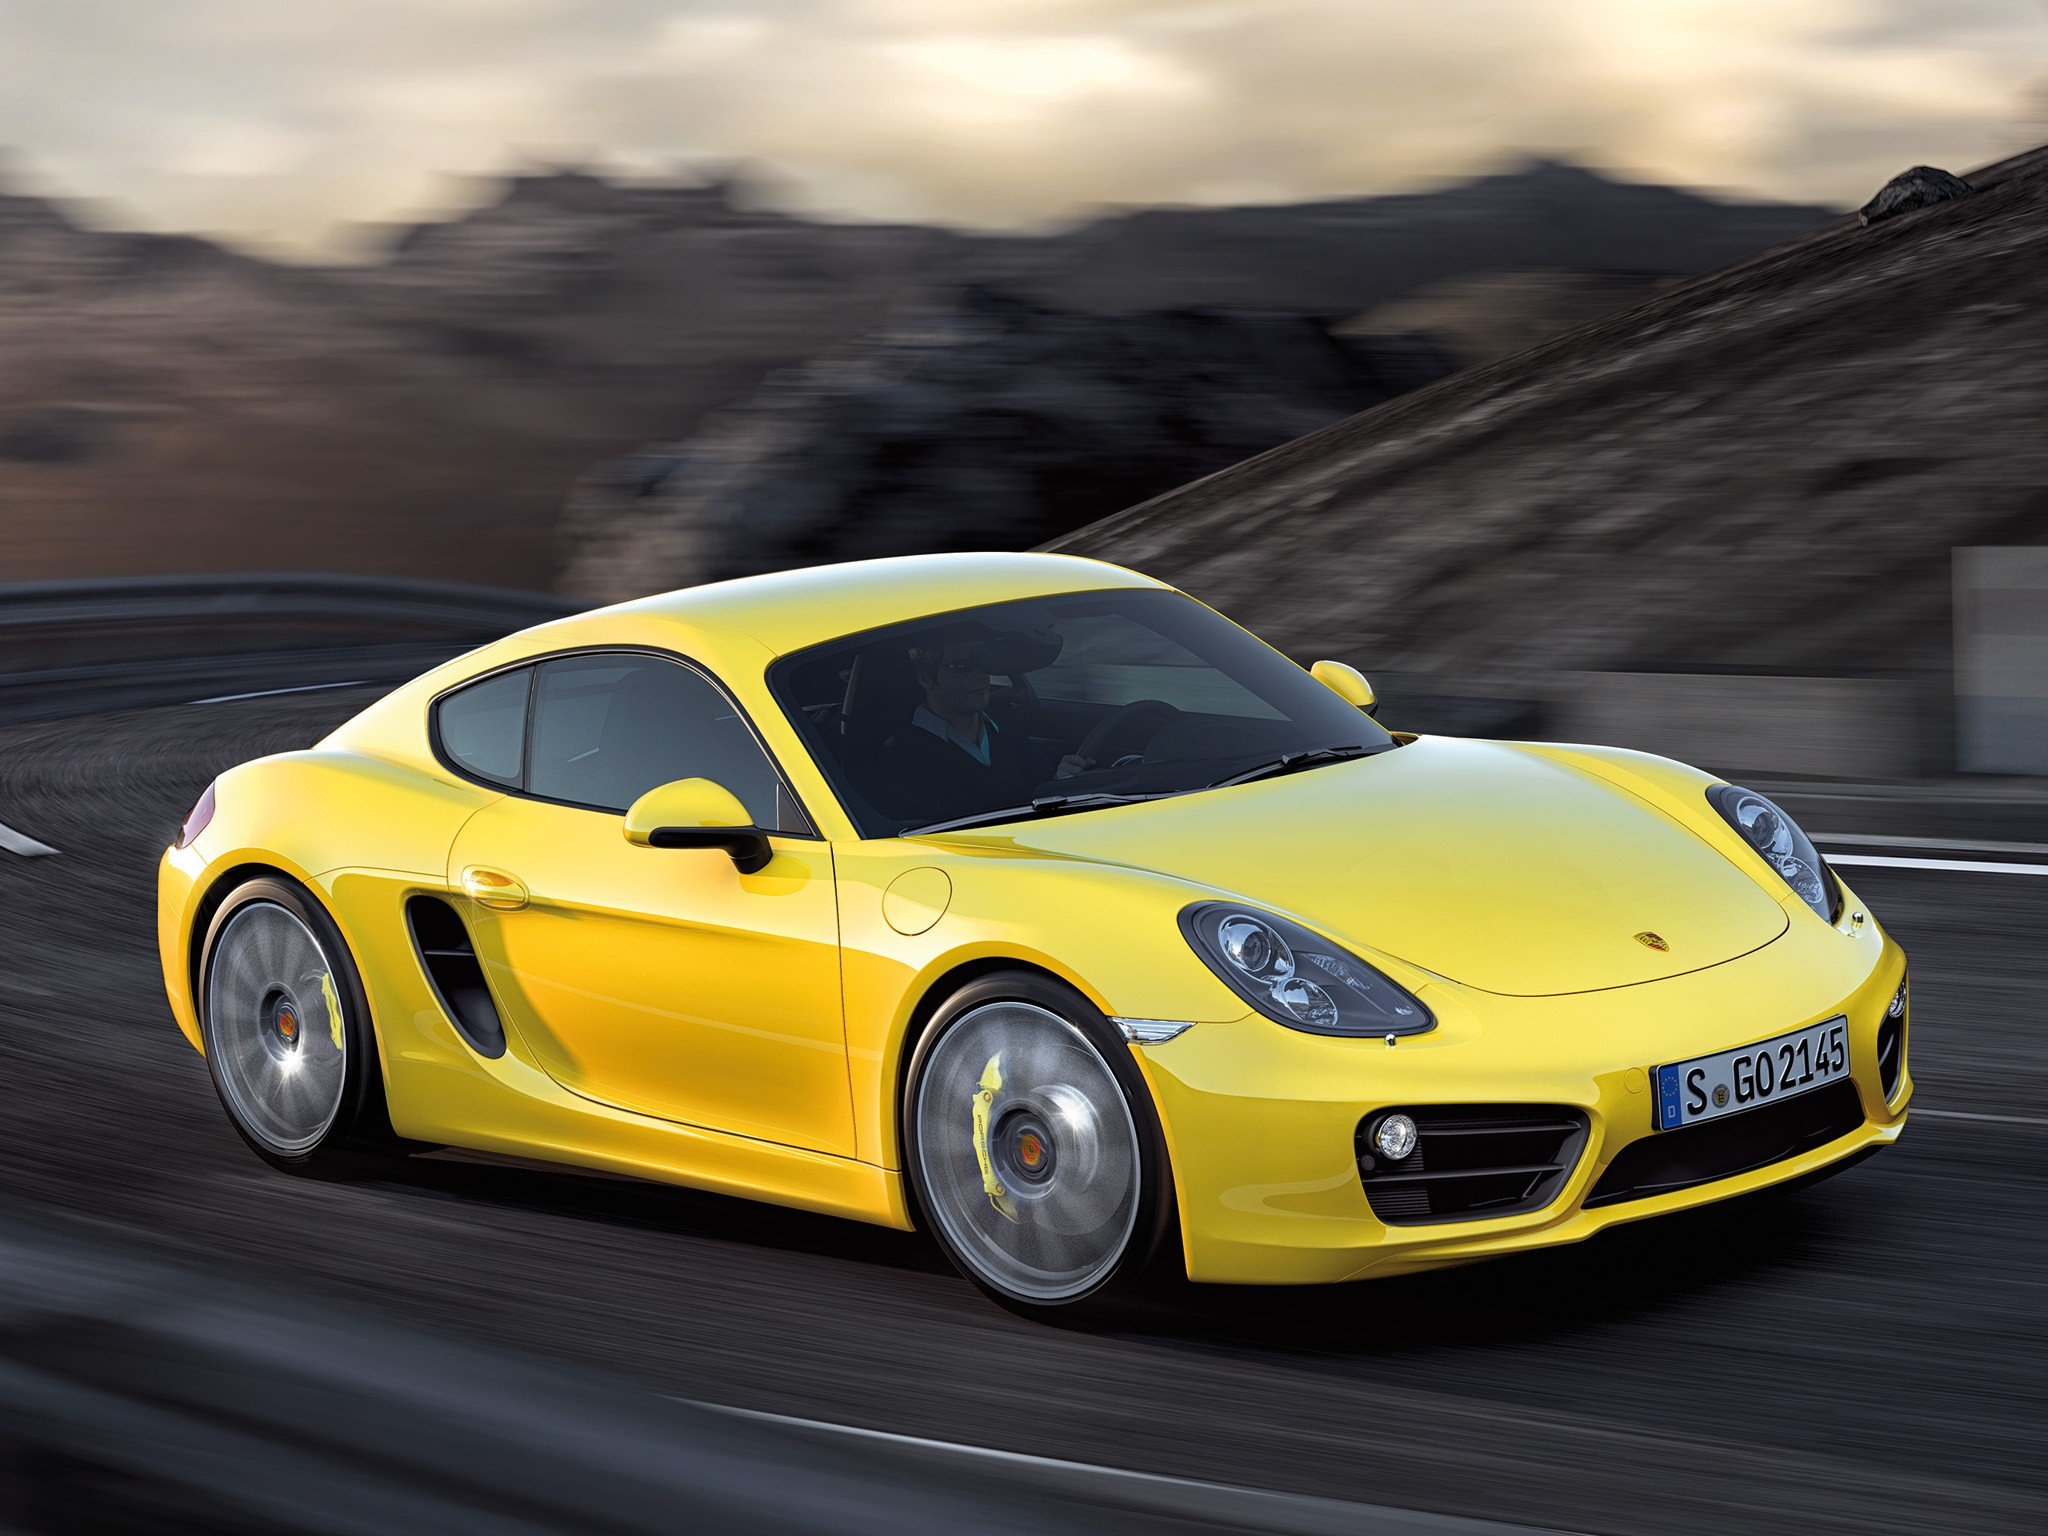 porsche cayman s 981 specs photos 2012 2013 2014 2015 2016 autoevolution. Black Bedroom Furniture Sets. Home Design Ideas